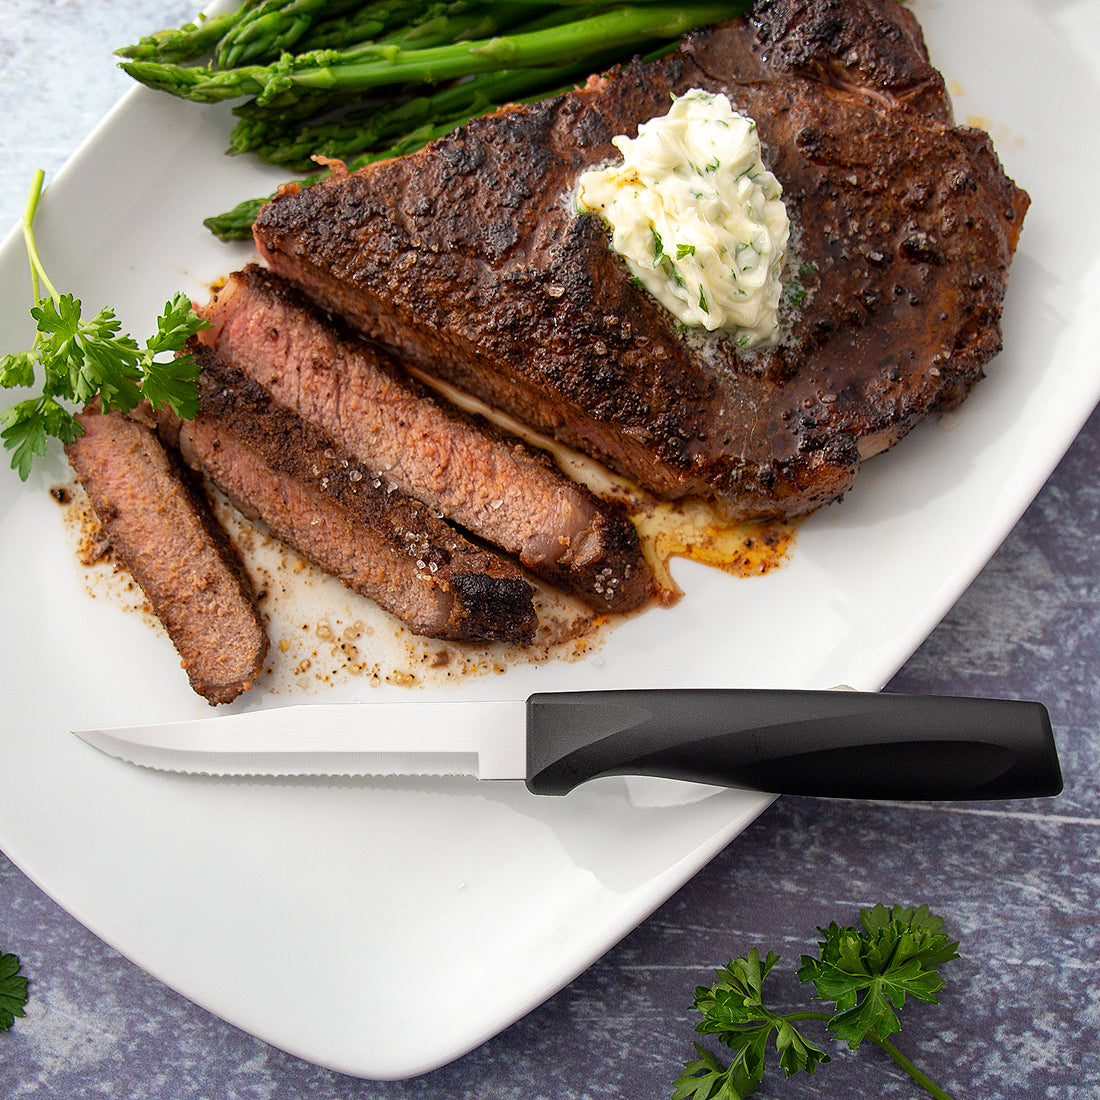 Rada Cutlery Anthem Wave Serrated Steak knife on plate with sliced steak.